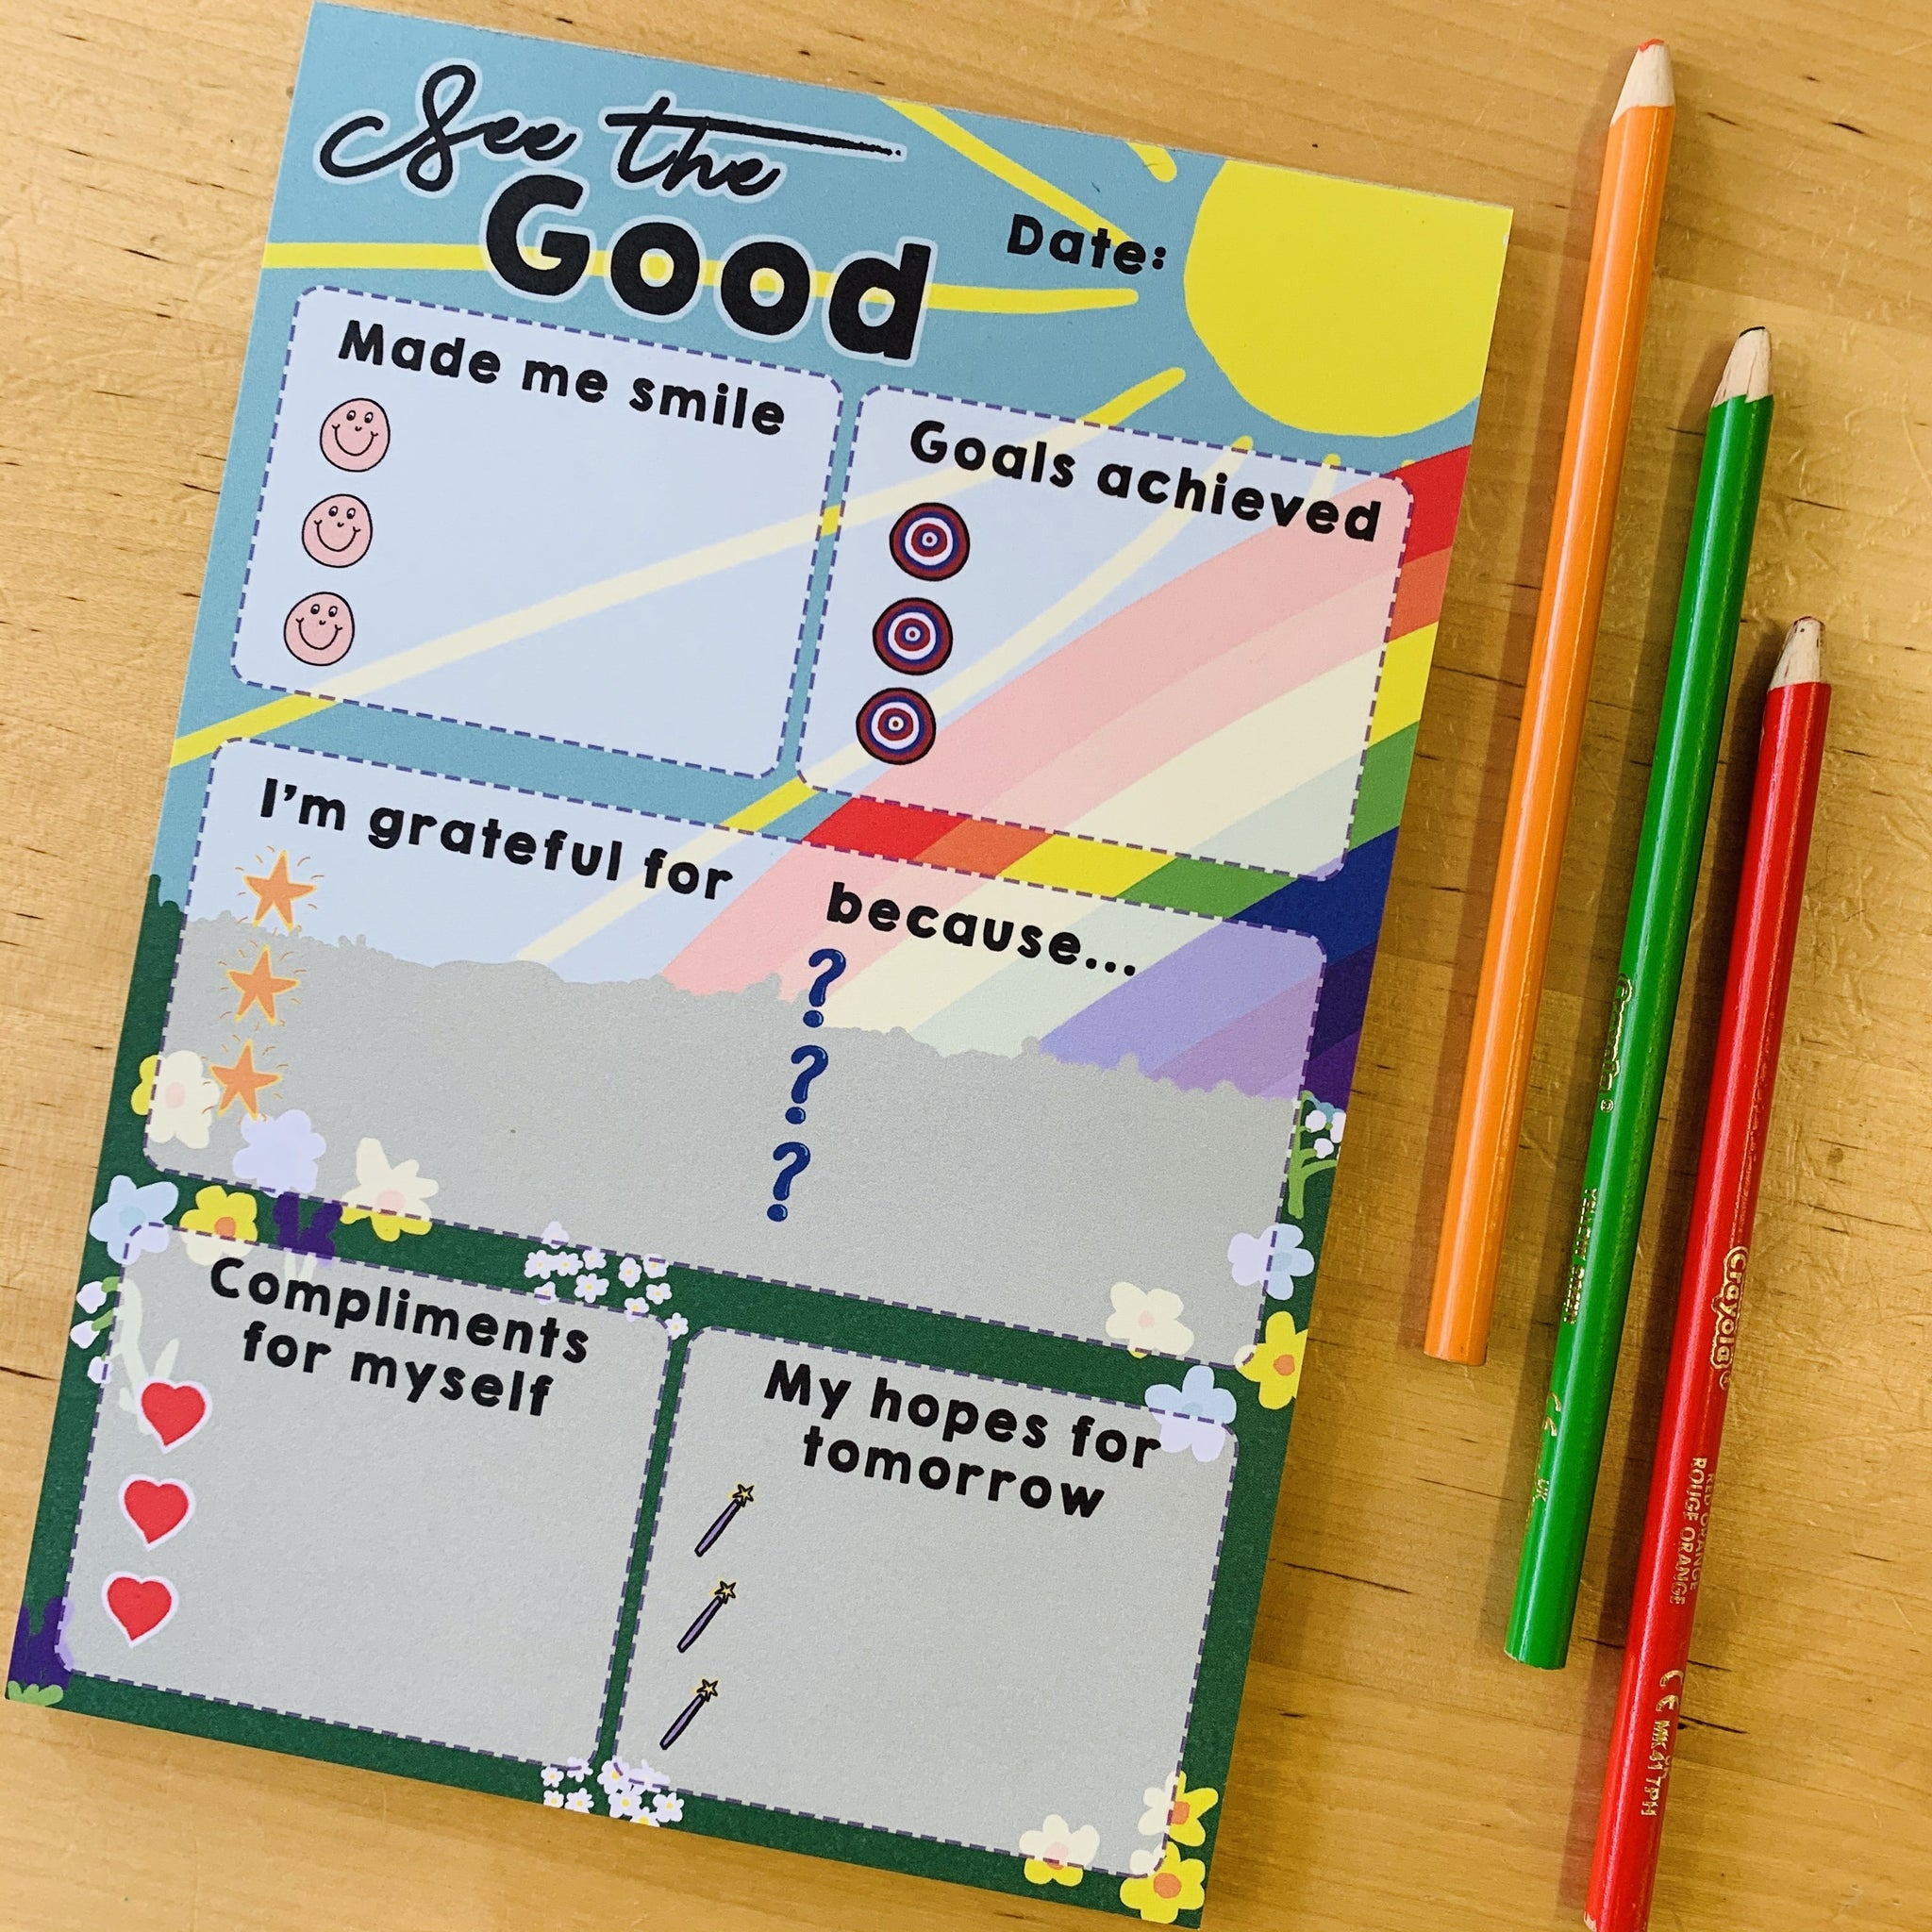 See the Good A5 Notepad